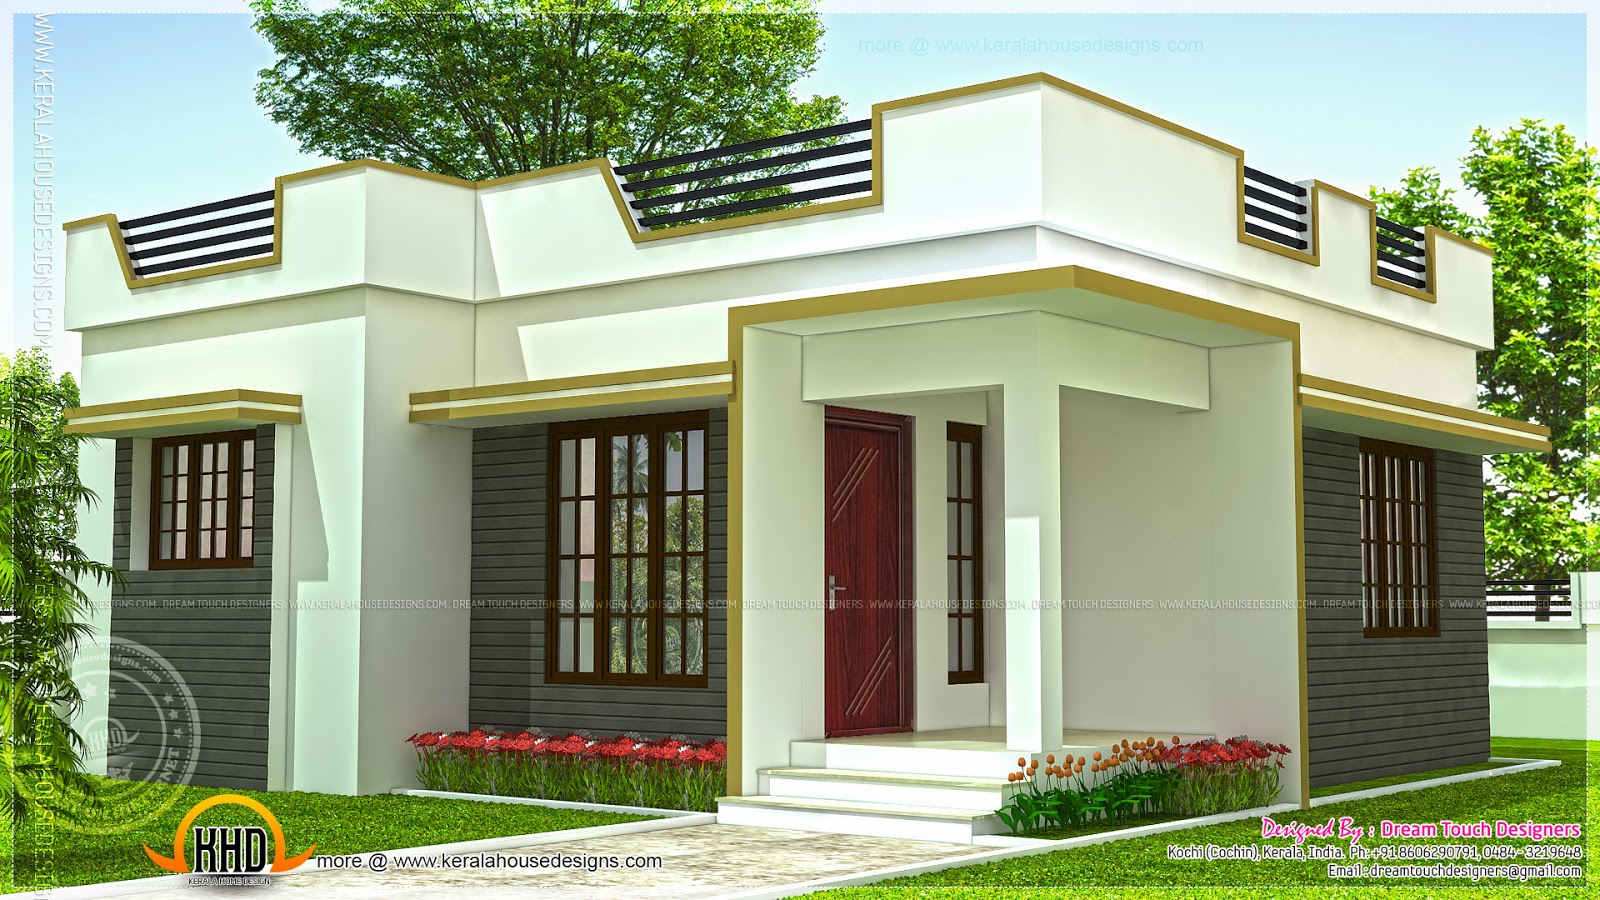 Small house in kerala in 640 square feet kerala home for Small budget house plans in kerala